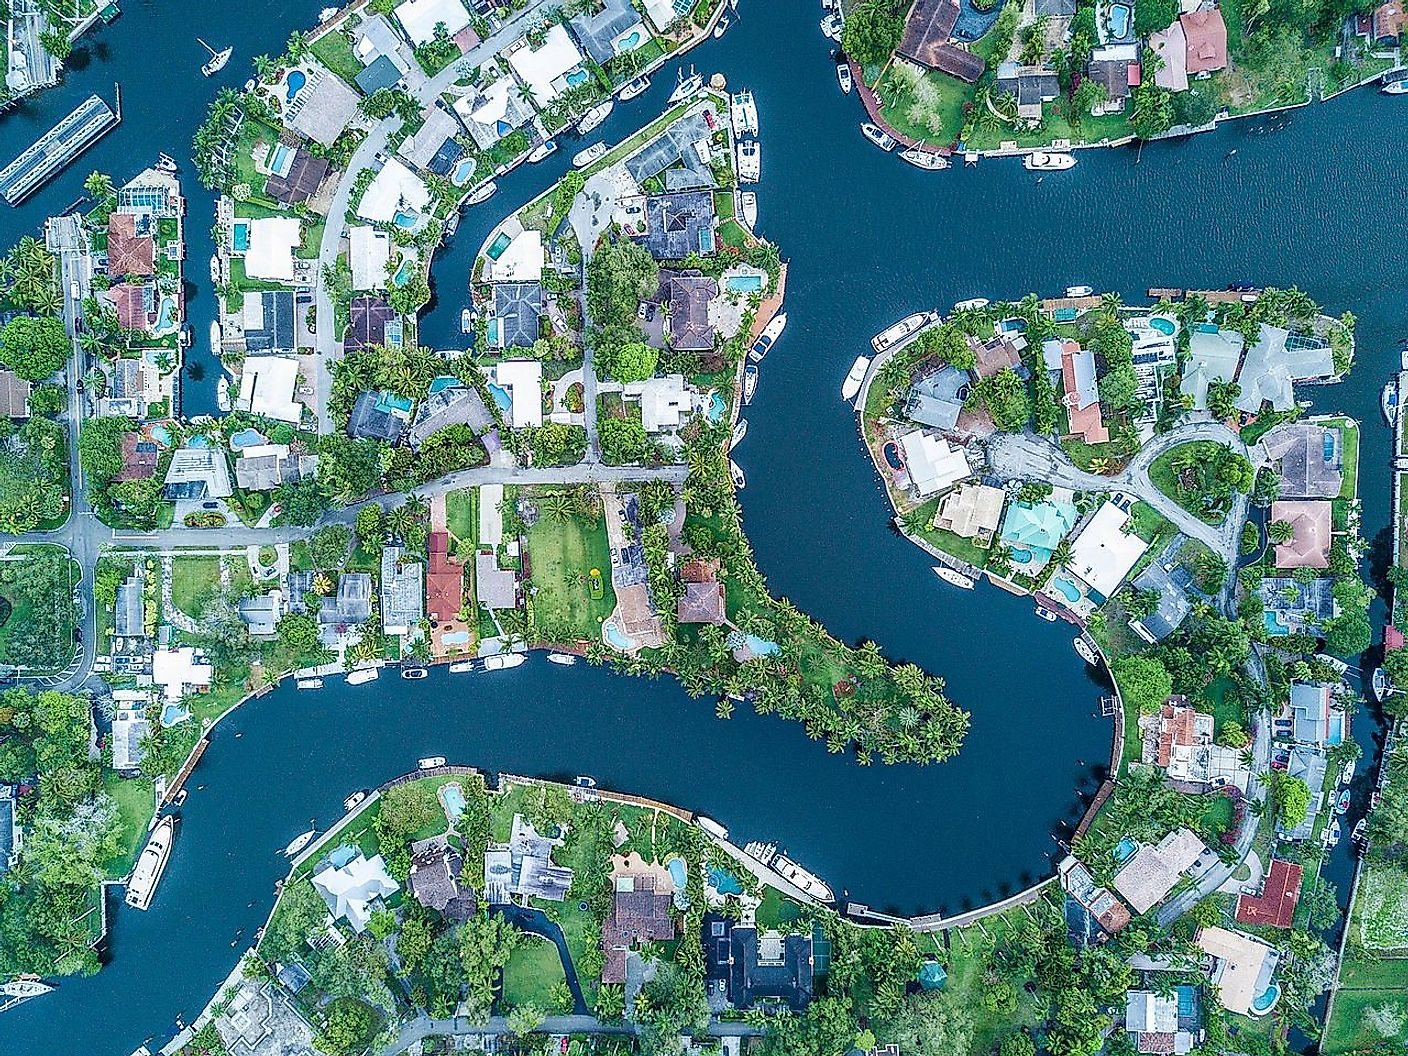 Tarpon River Neighborhood in Fort Lauderdale, Florida. Image credit: LuizCent/Wikimedia.org